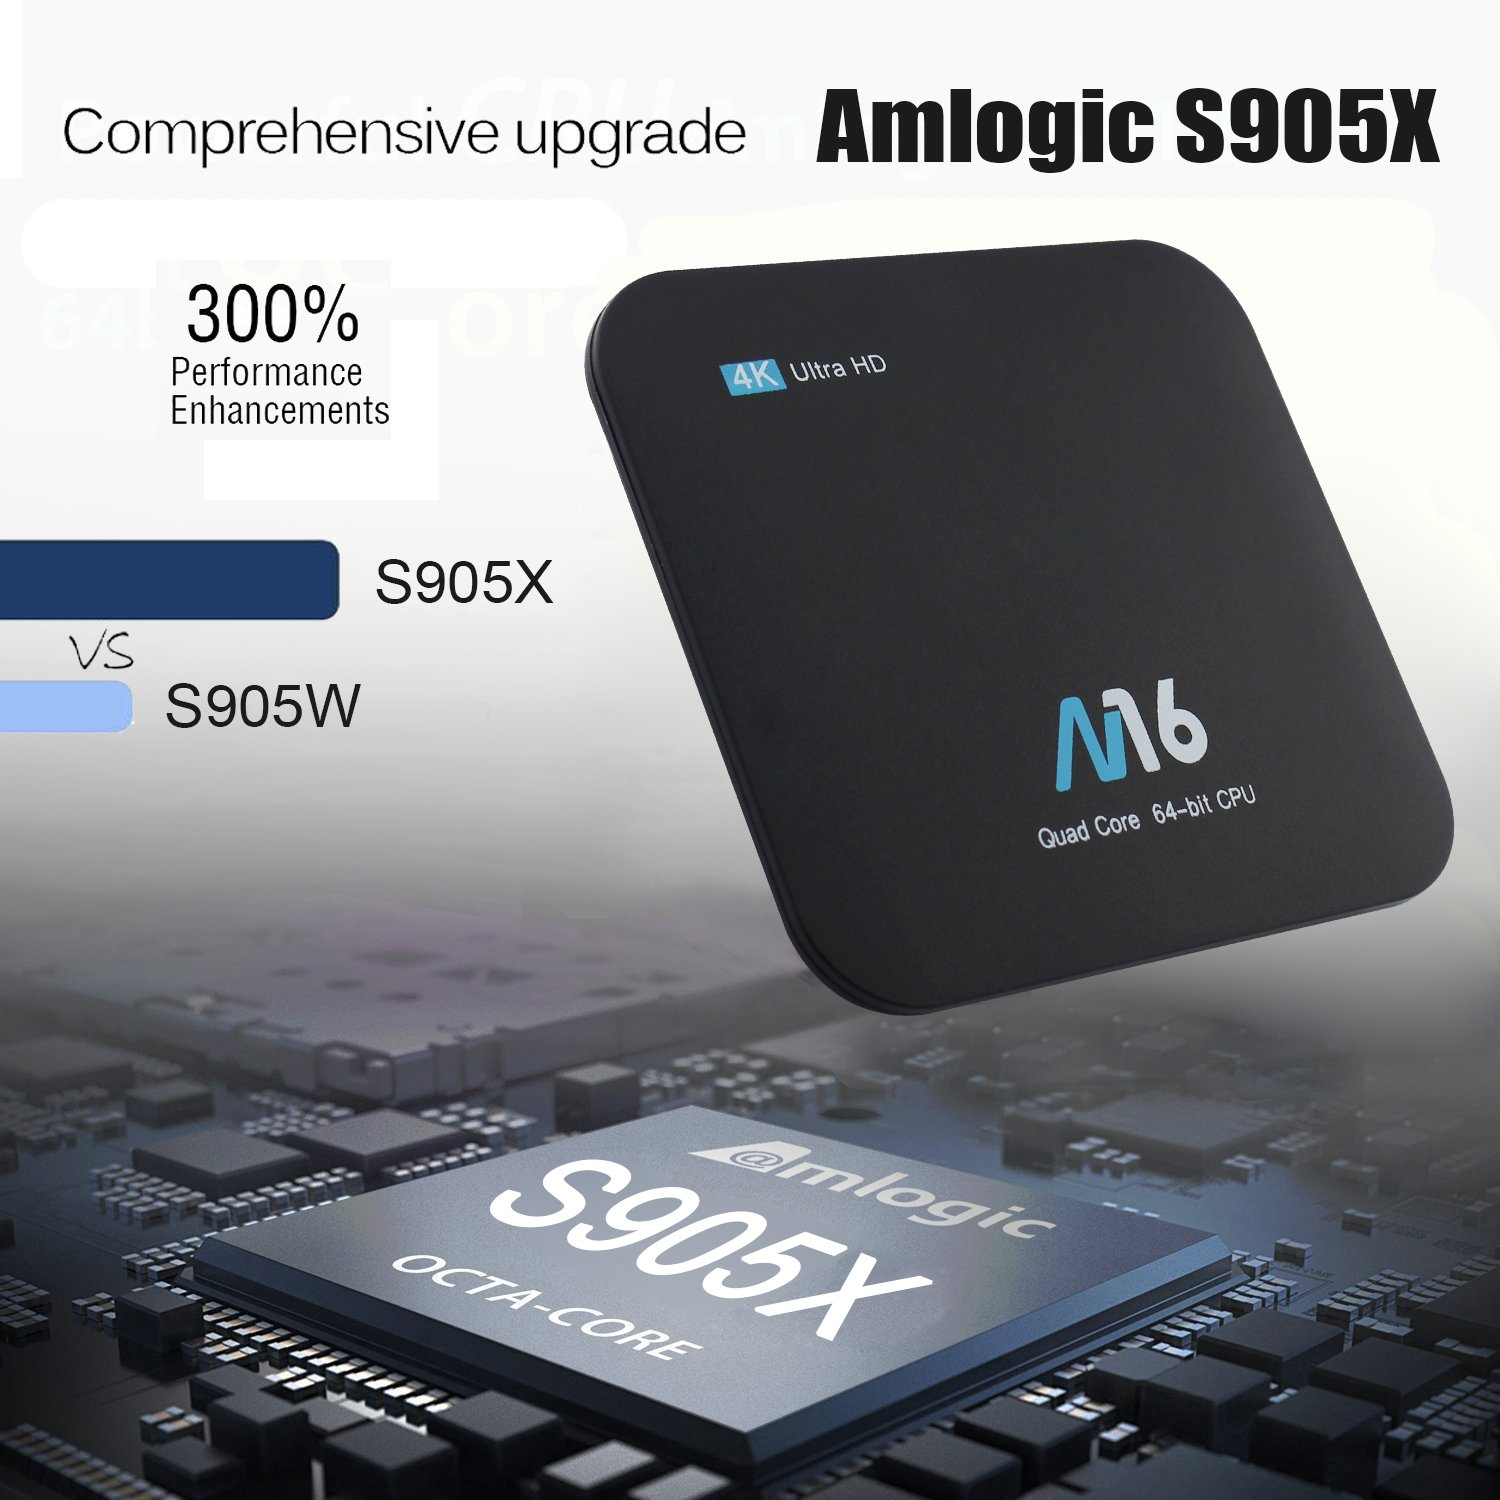 Android TV Box - VIDEN Newest Android 7 1 Smart TV Boxsets, Amlogic S905X  Quad-Core, 2GB RAM & 16GB ROM, 4K @60fps Ultra HD, Support Video Encoder  for